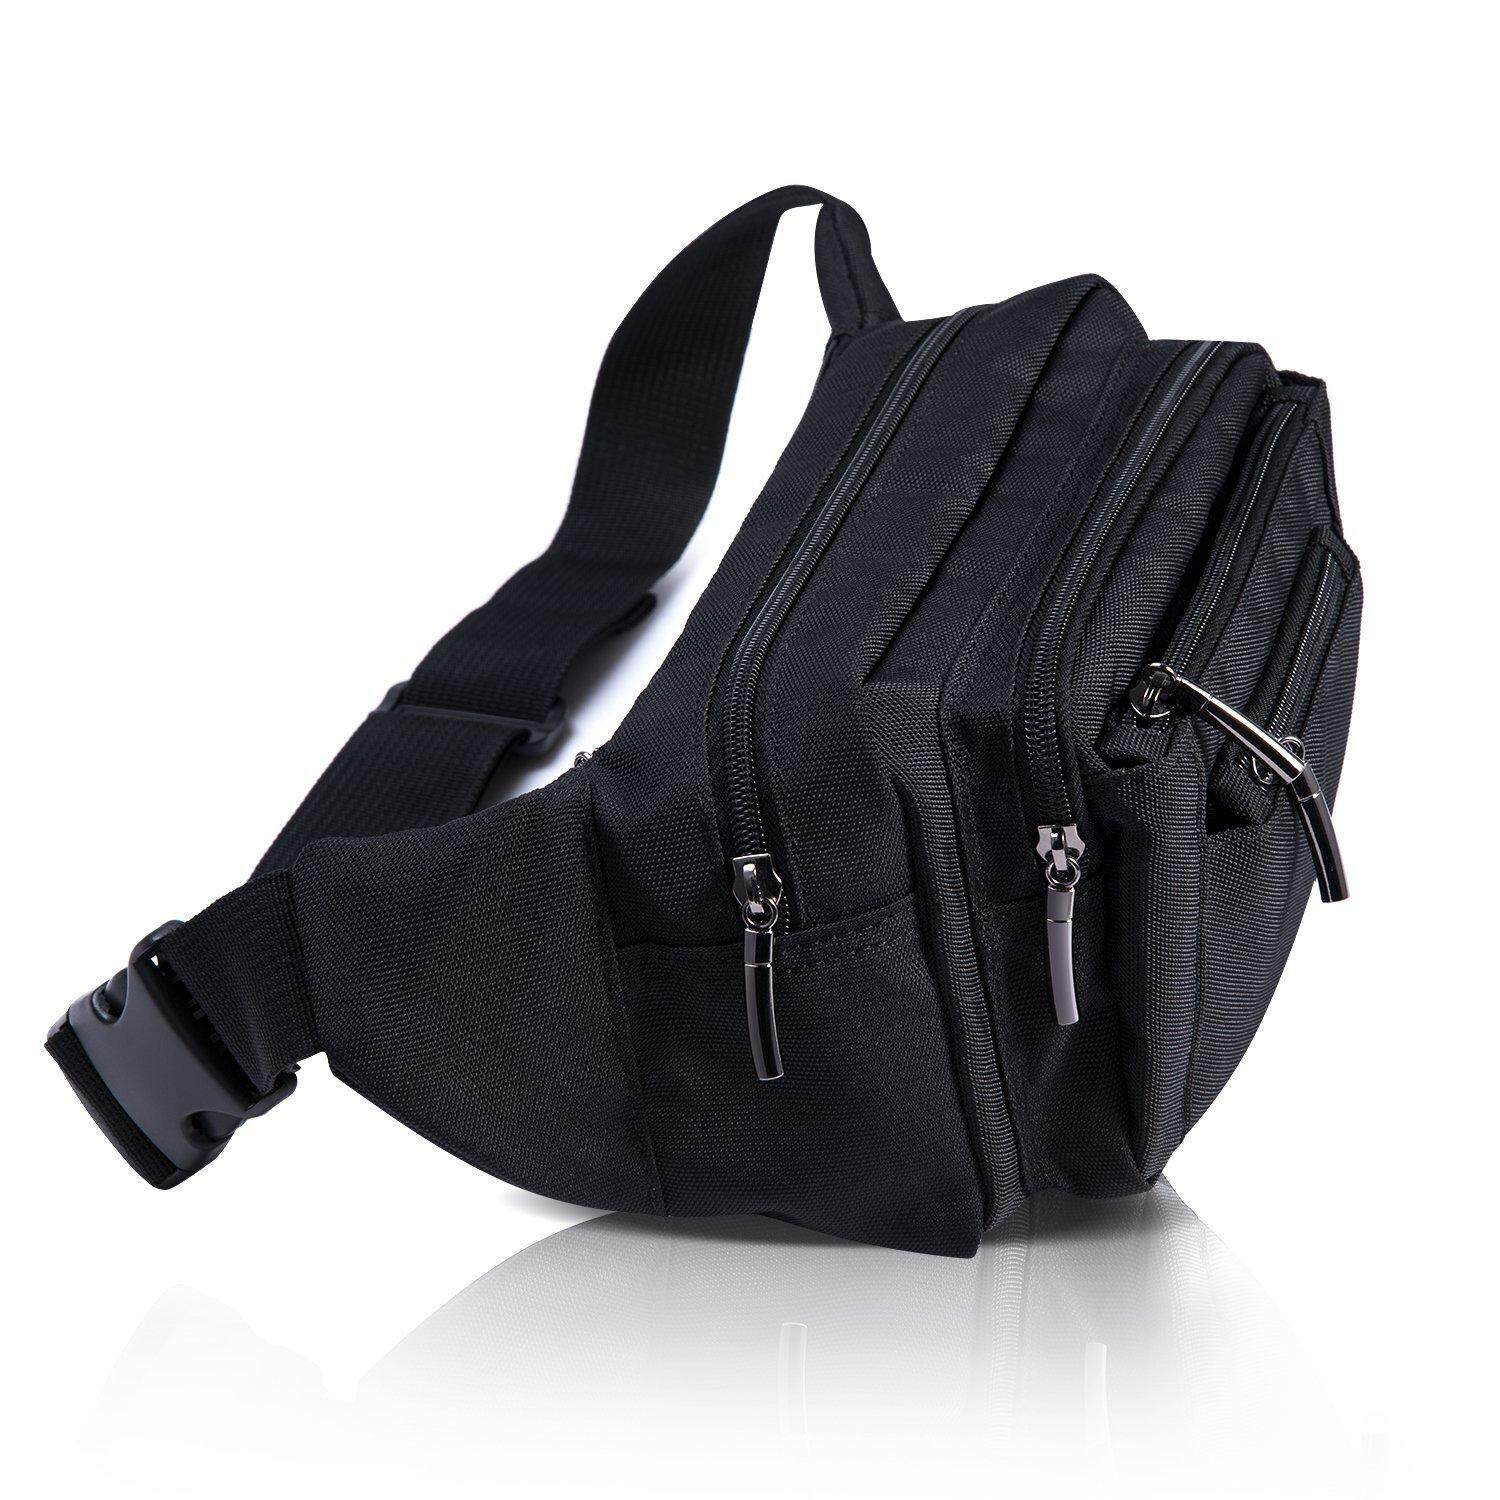 Multifunctional Waterproof Waist Pouch Bag for Men&Women Hip Bum Bag with Adjustable Strap for Outdoors Workout